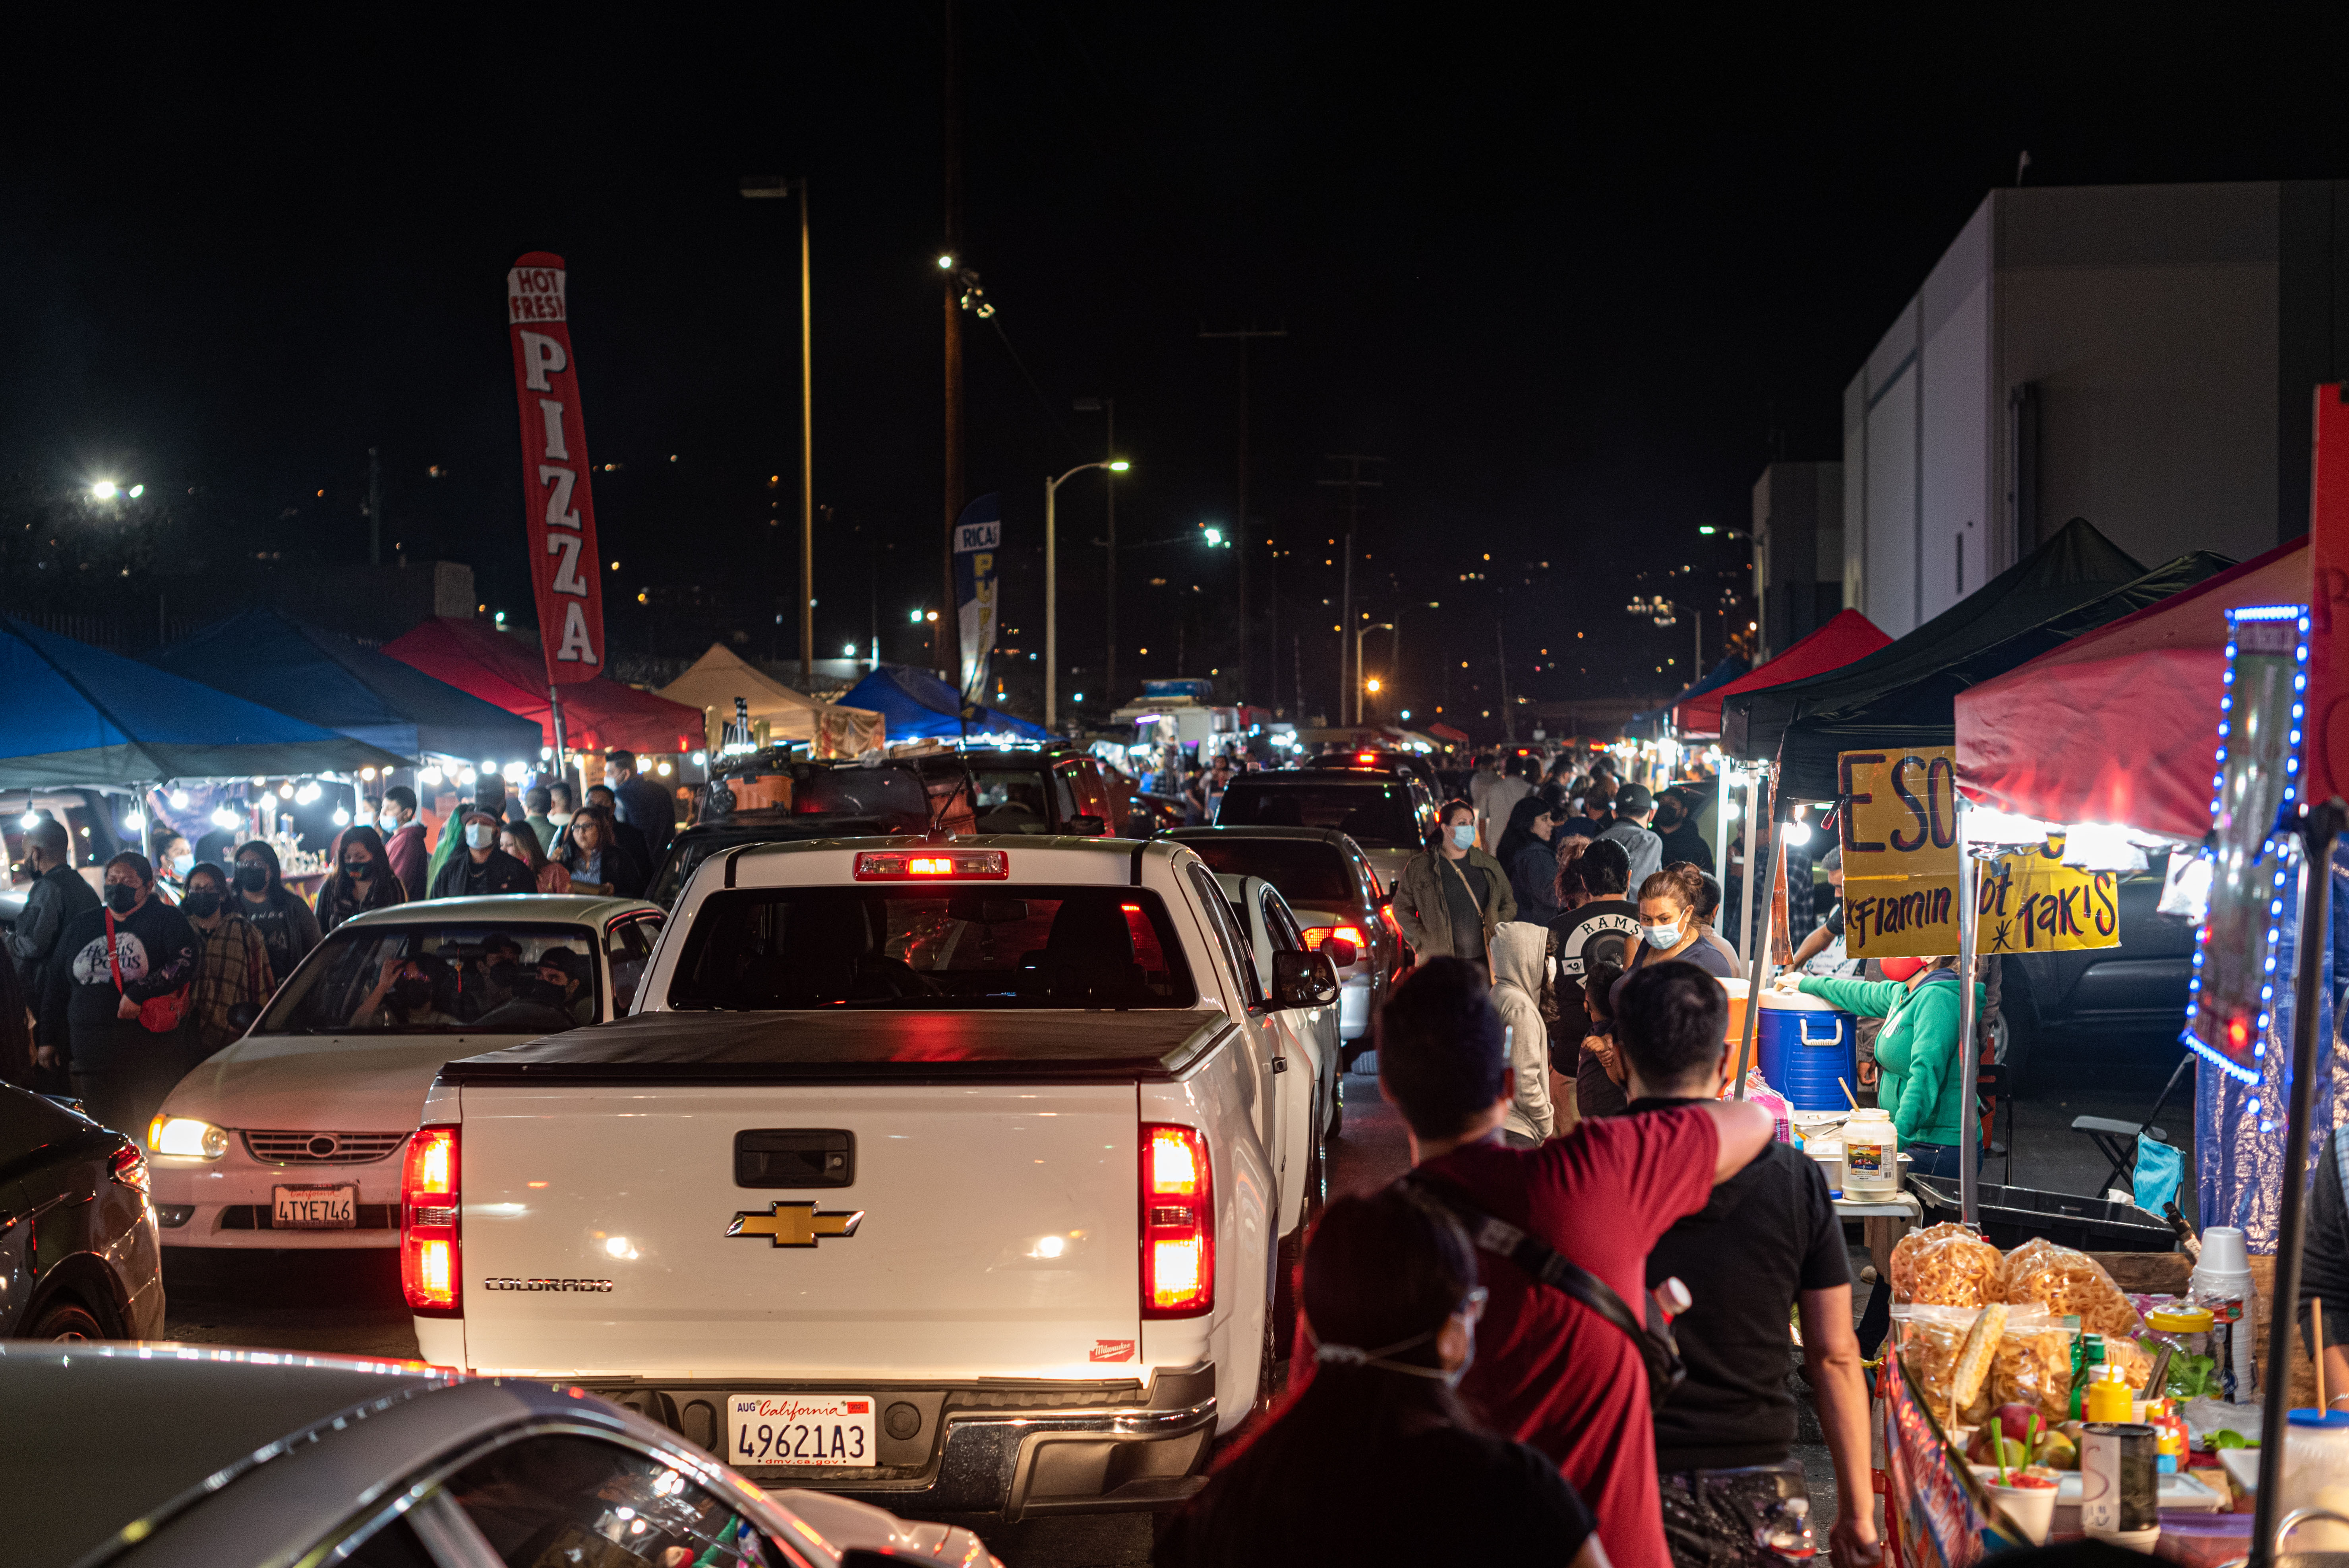 Cars and brake lights inside of a very busy night market.